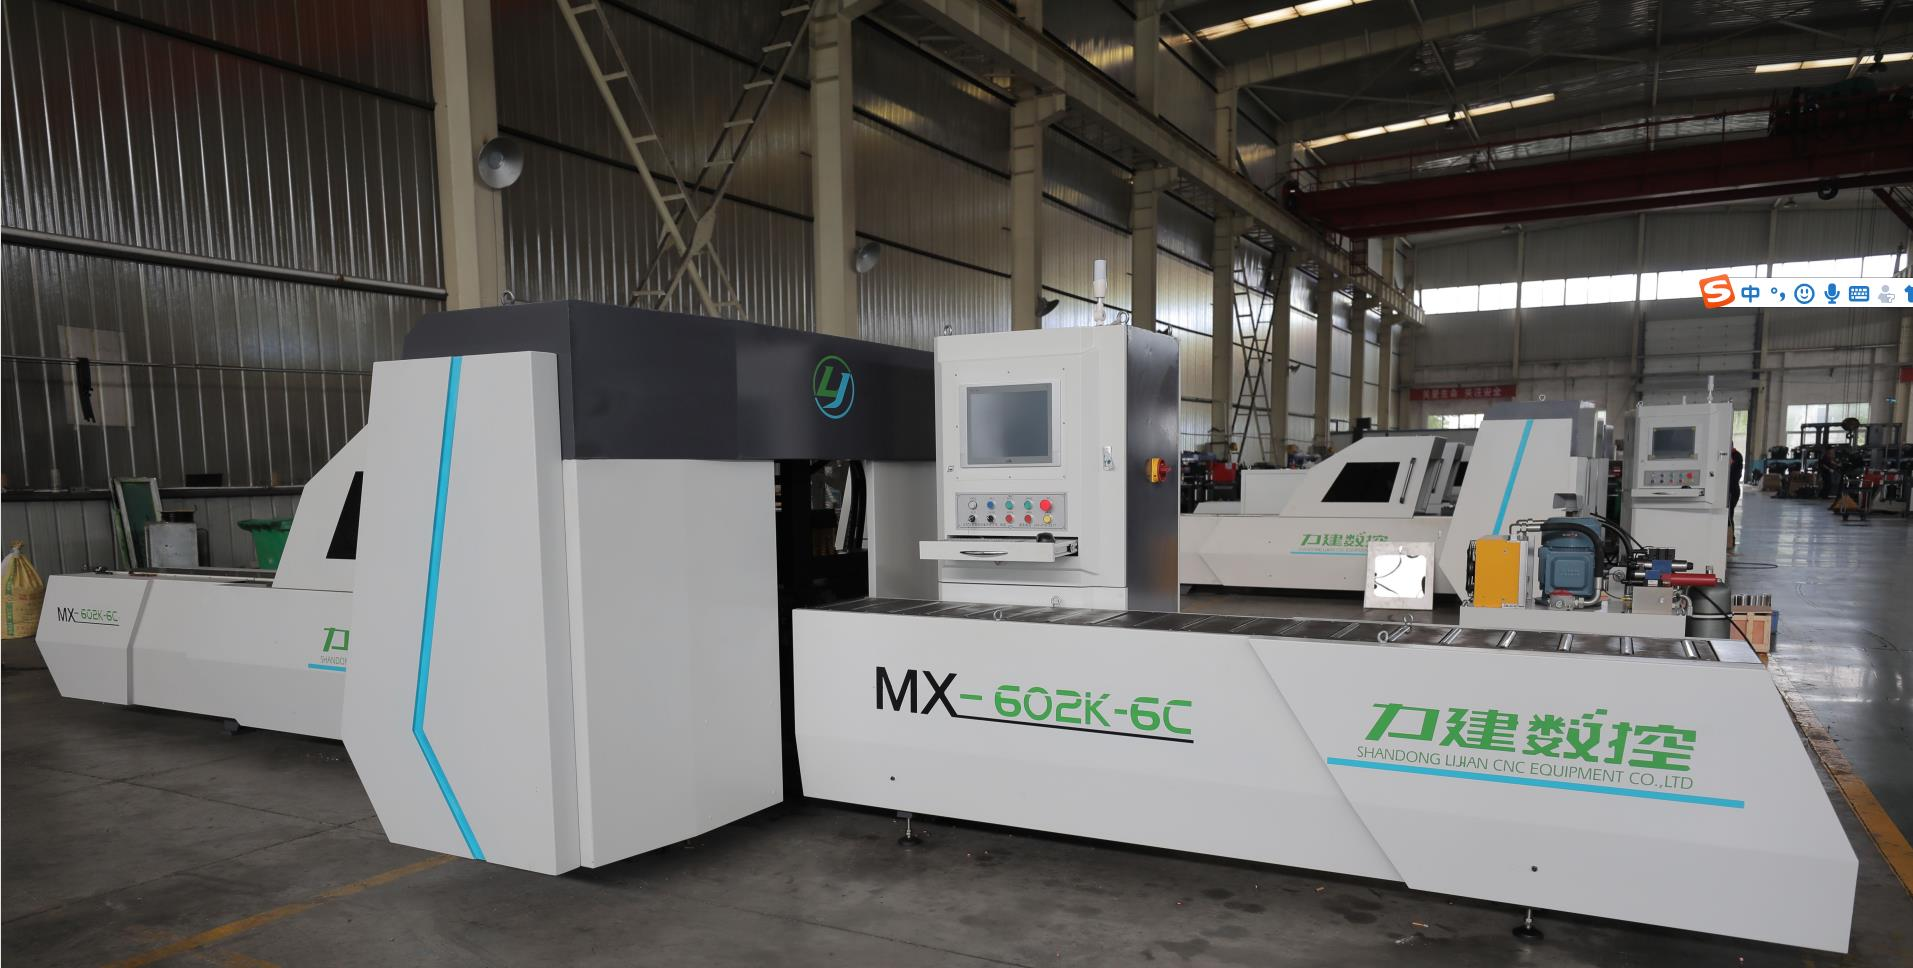 MX402K-7C CNC punching cutting machine for copper busbar